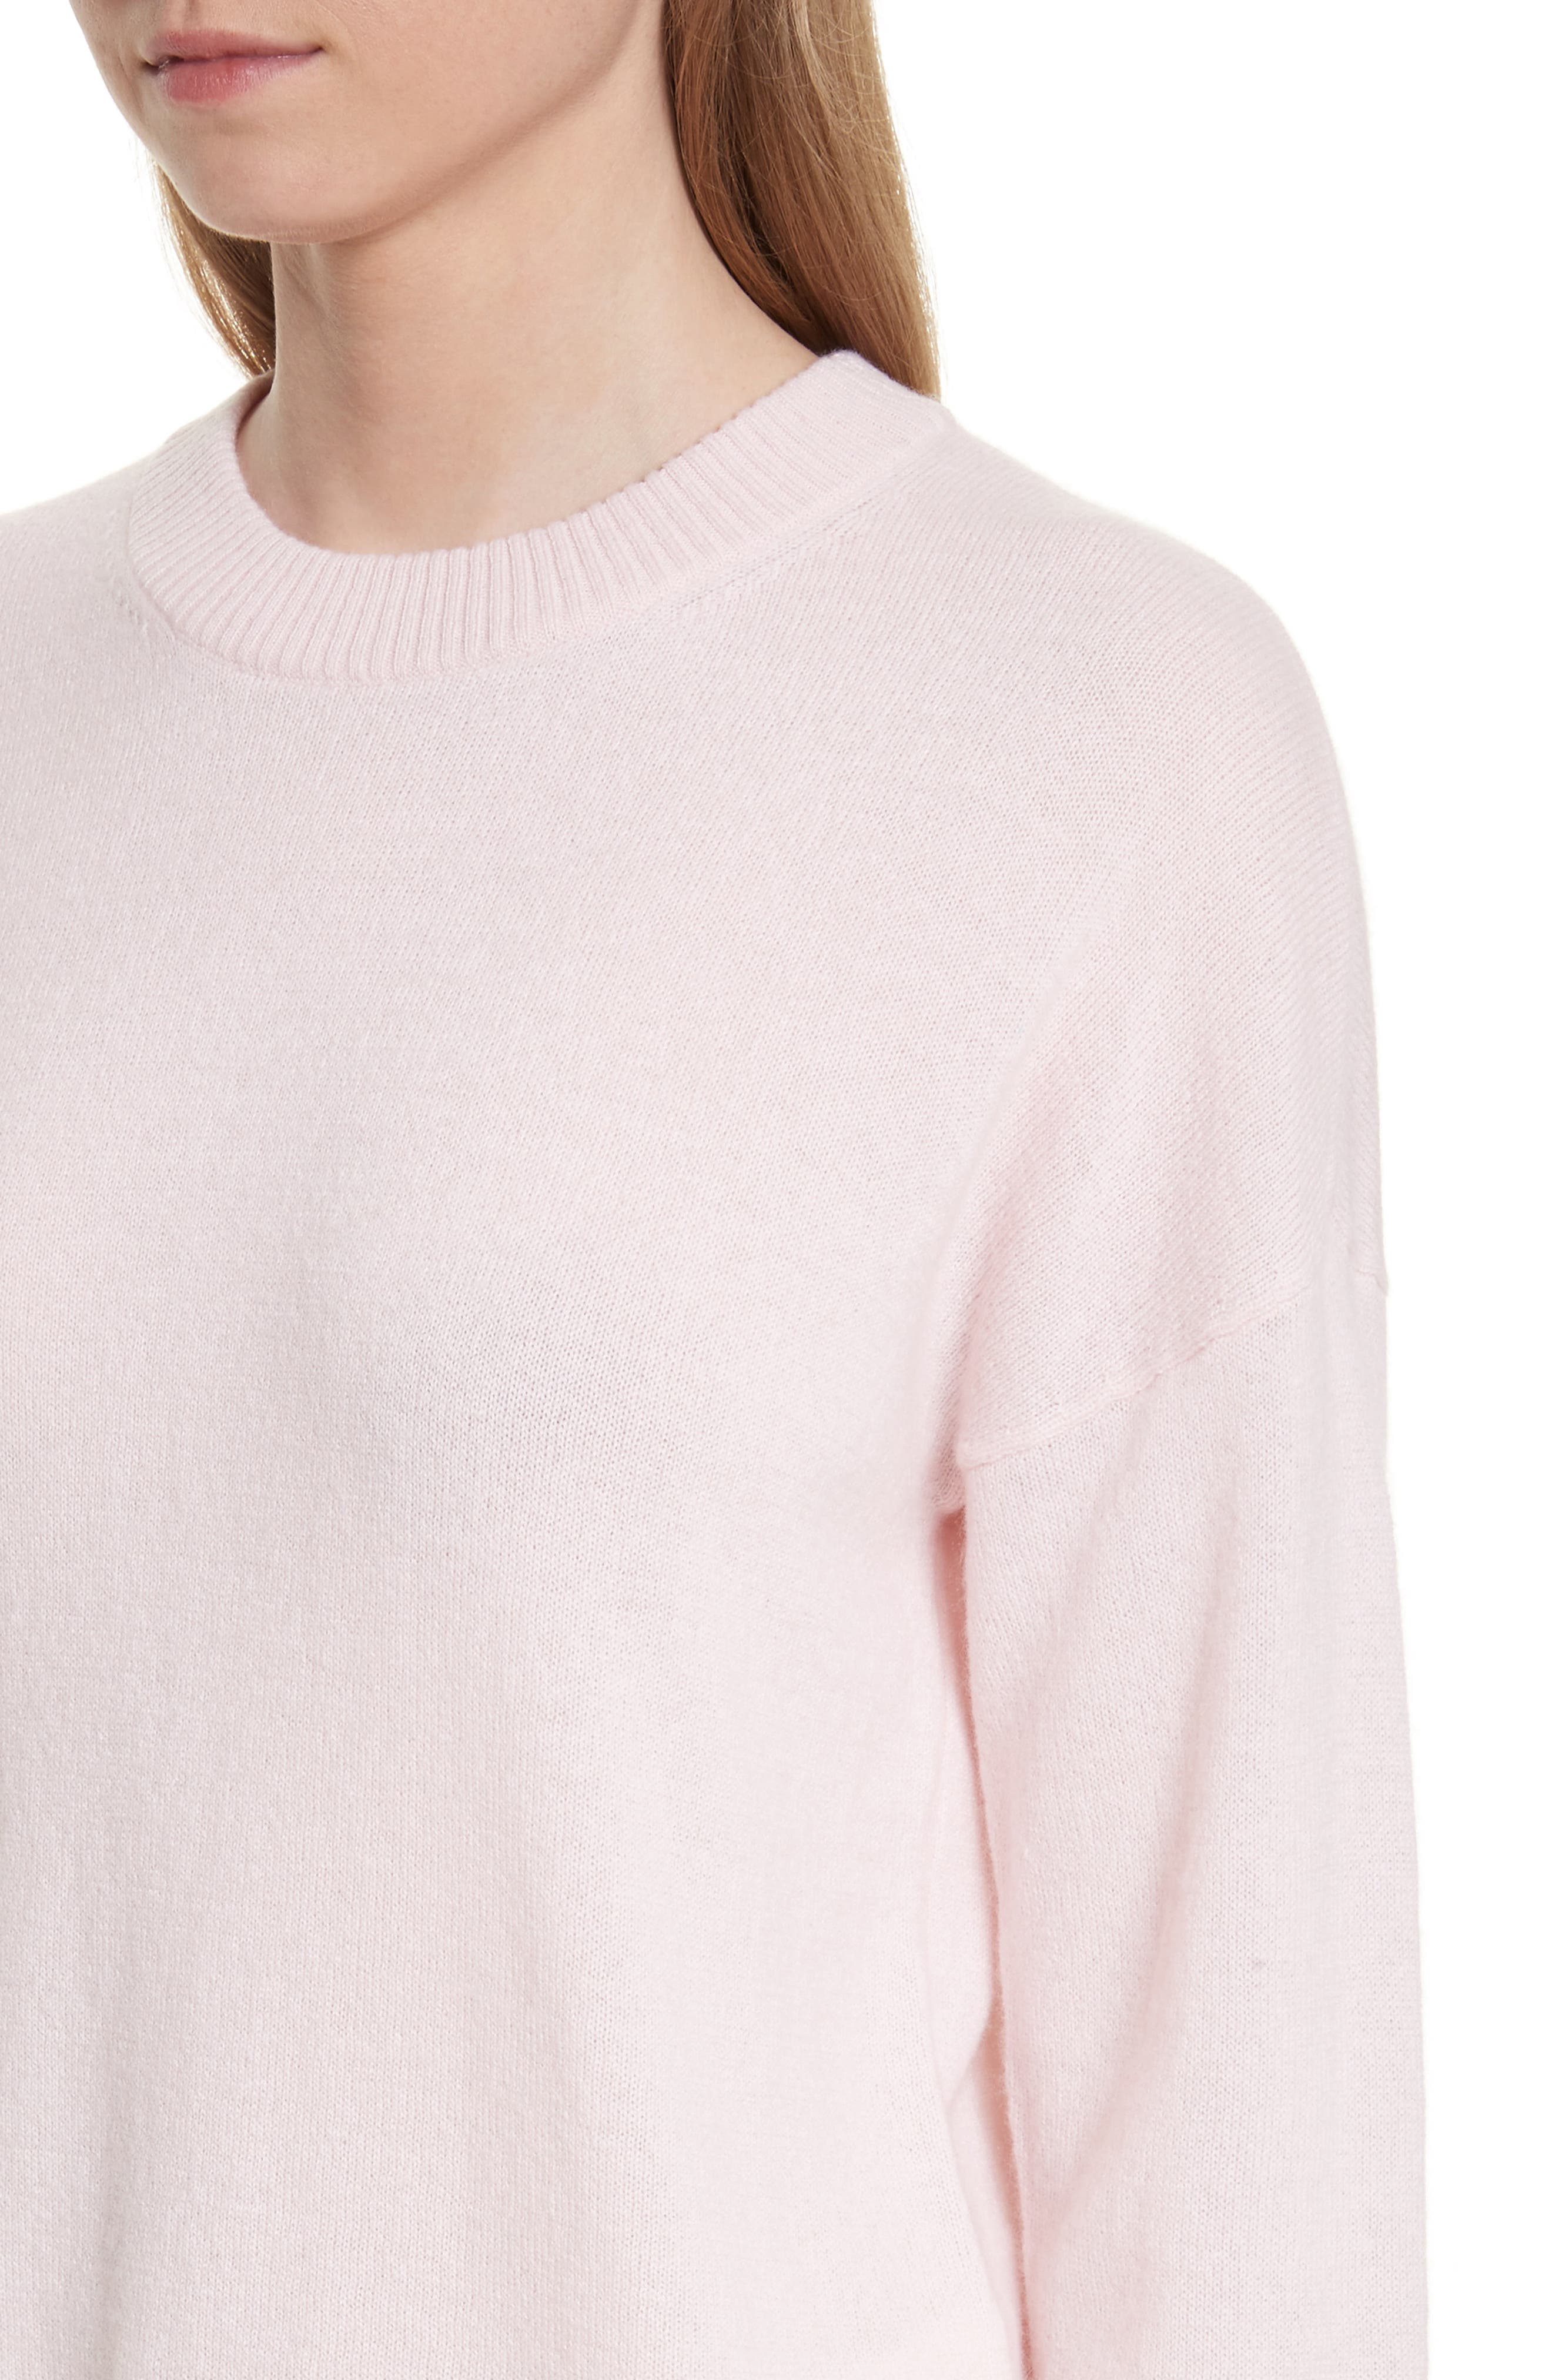 Bryce Oversize Cashmere Sweater,                             Alternate thumbnail 4, color,                             650